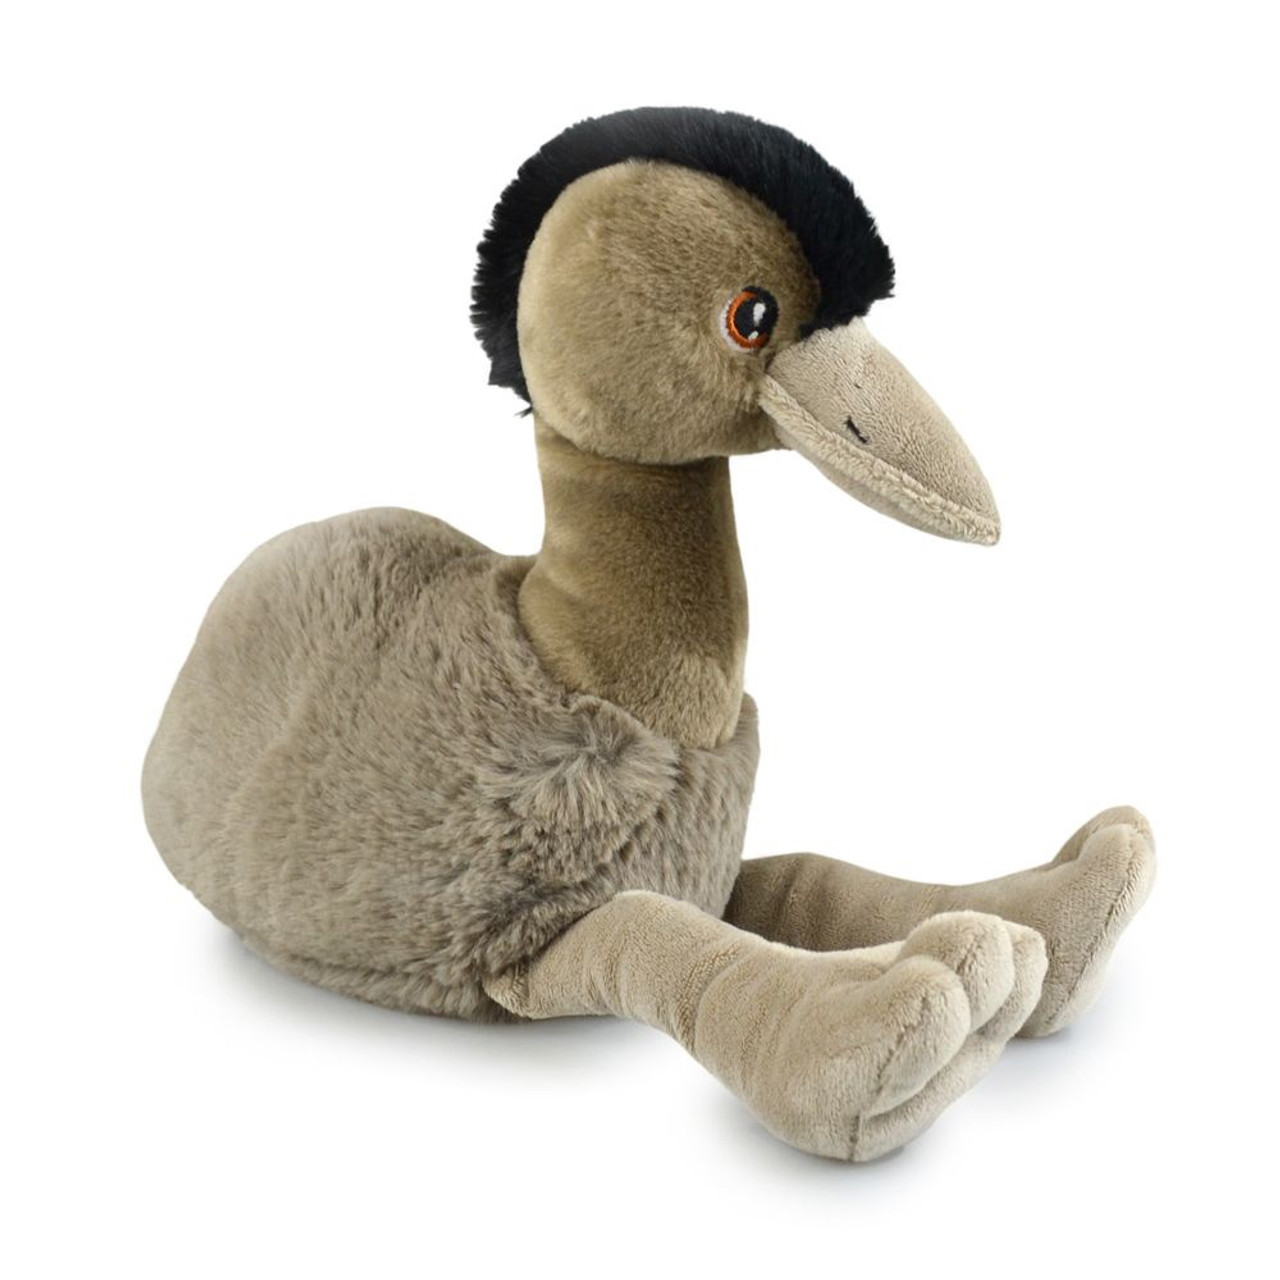 Korimco Keeleco Plush Toy Emu at Baby Barn Discounts Korimco keeleco plush toy range is made from recycles inner with super soft body.